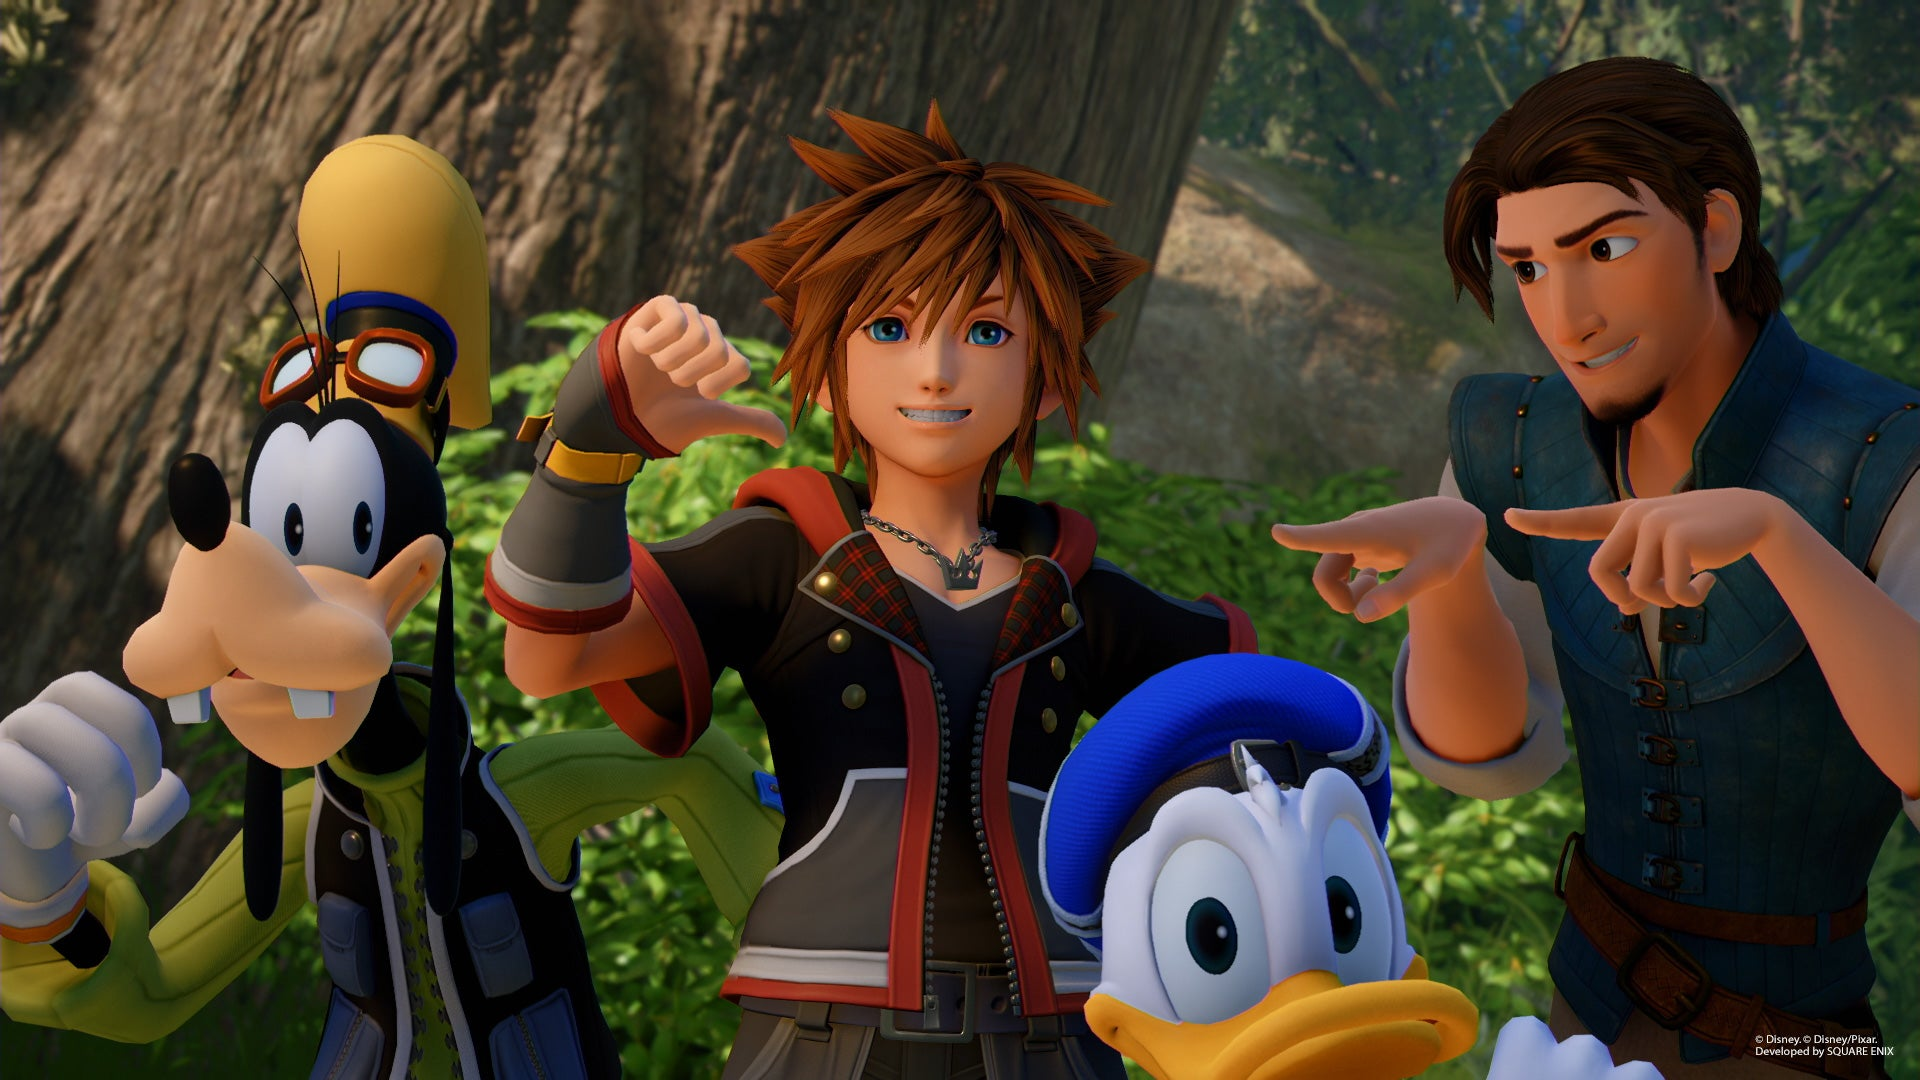 Kingdom Hearts III DLC ReMIND Is Coming To PS4 Next Month And Xbox One In February